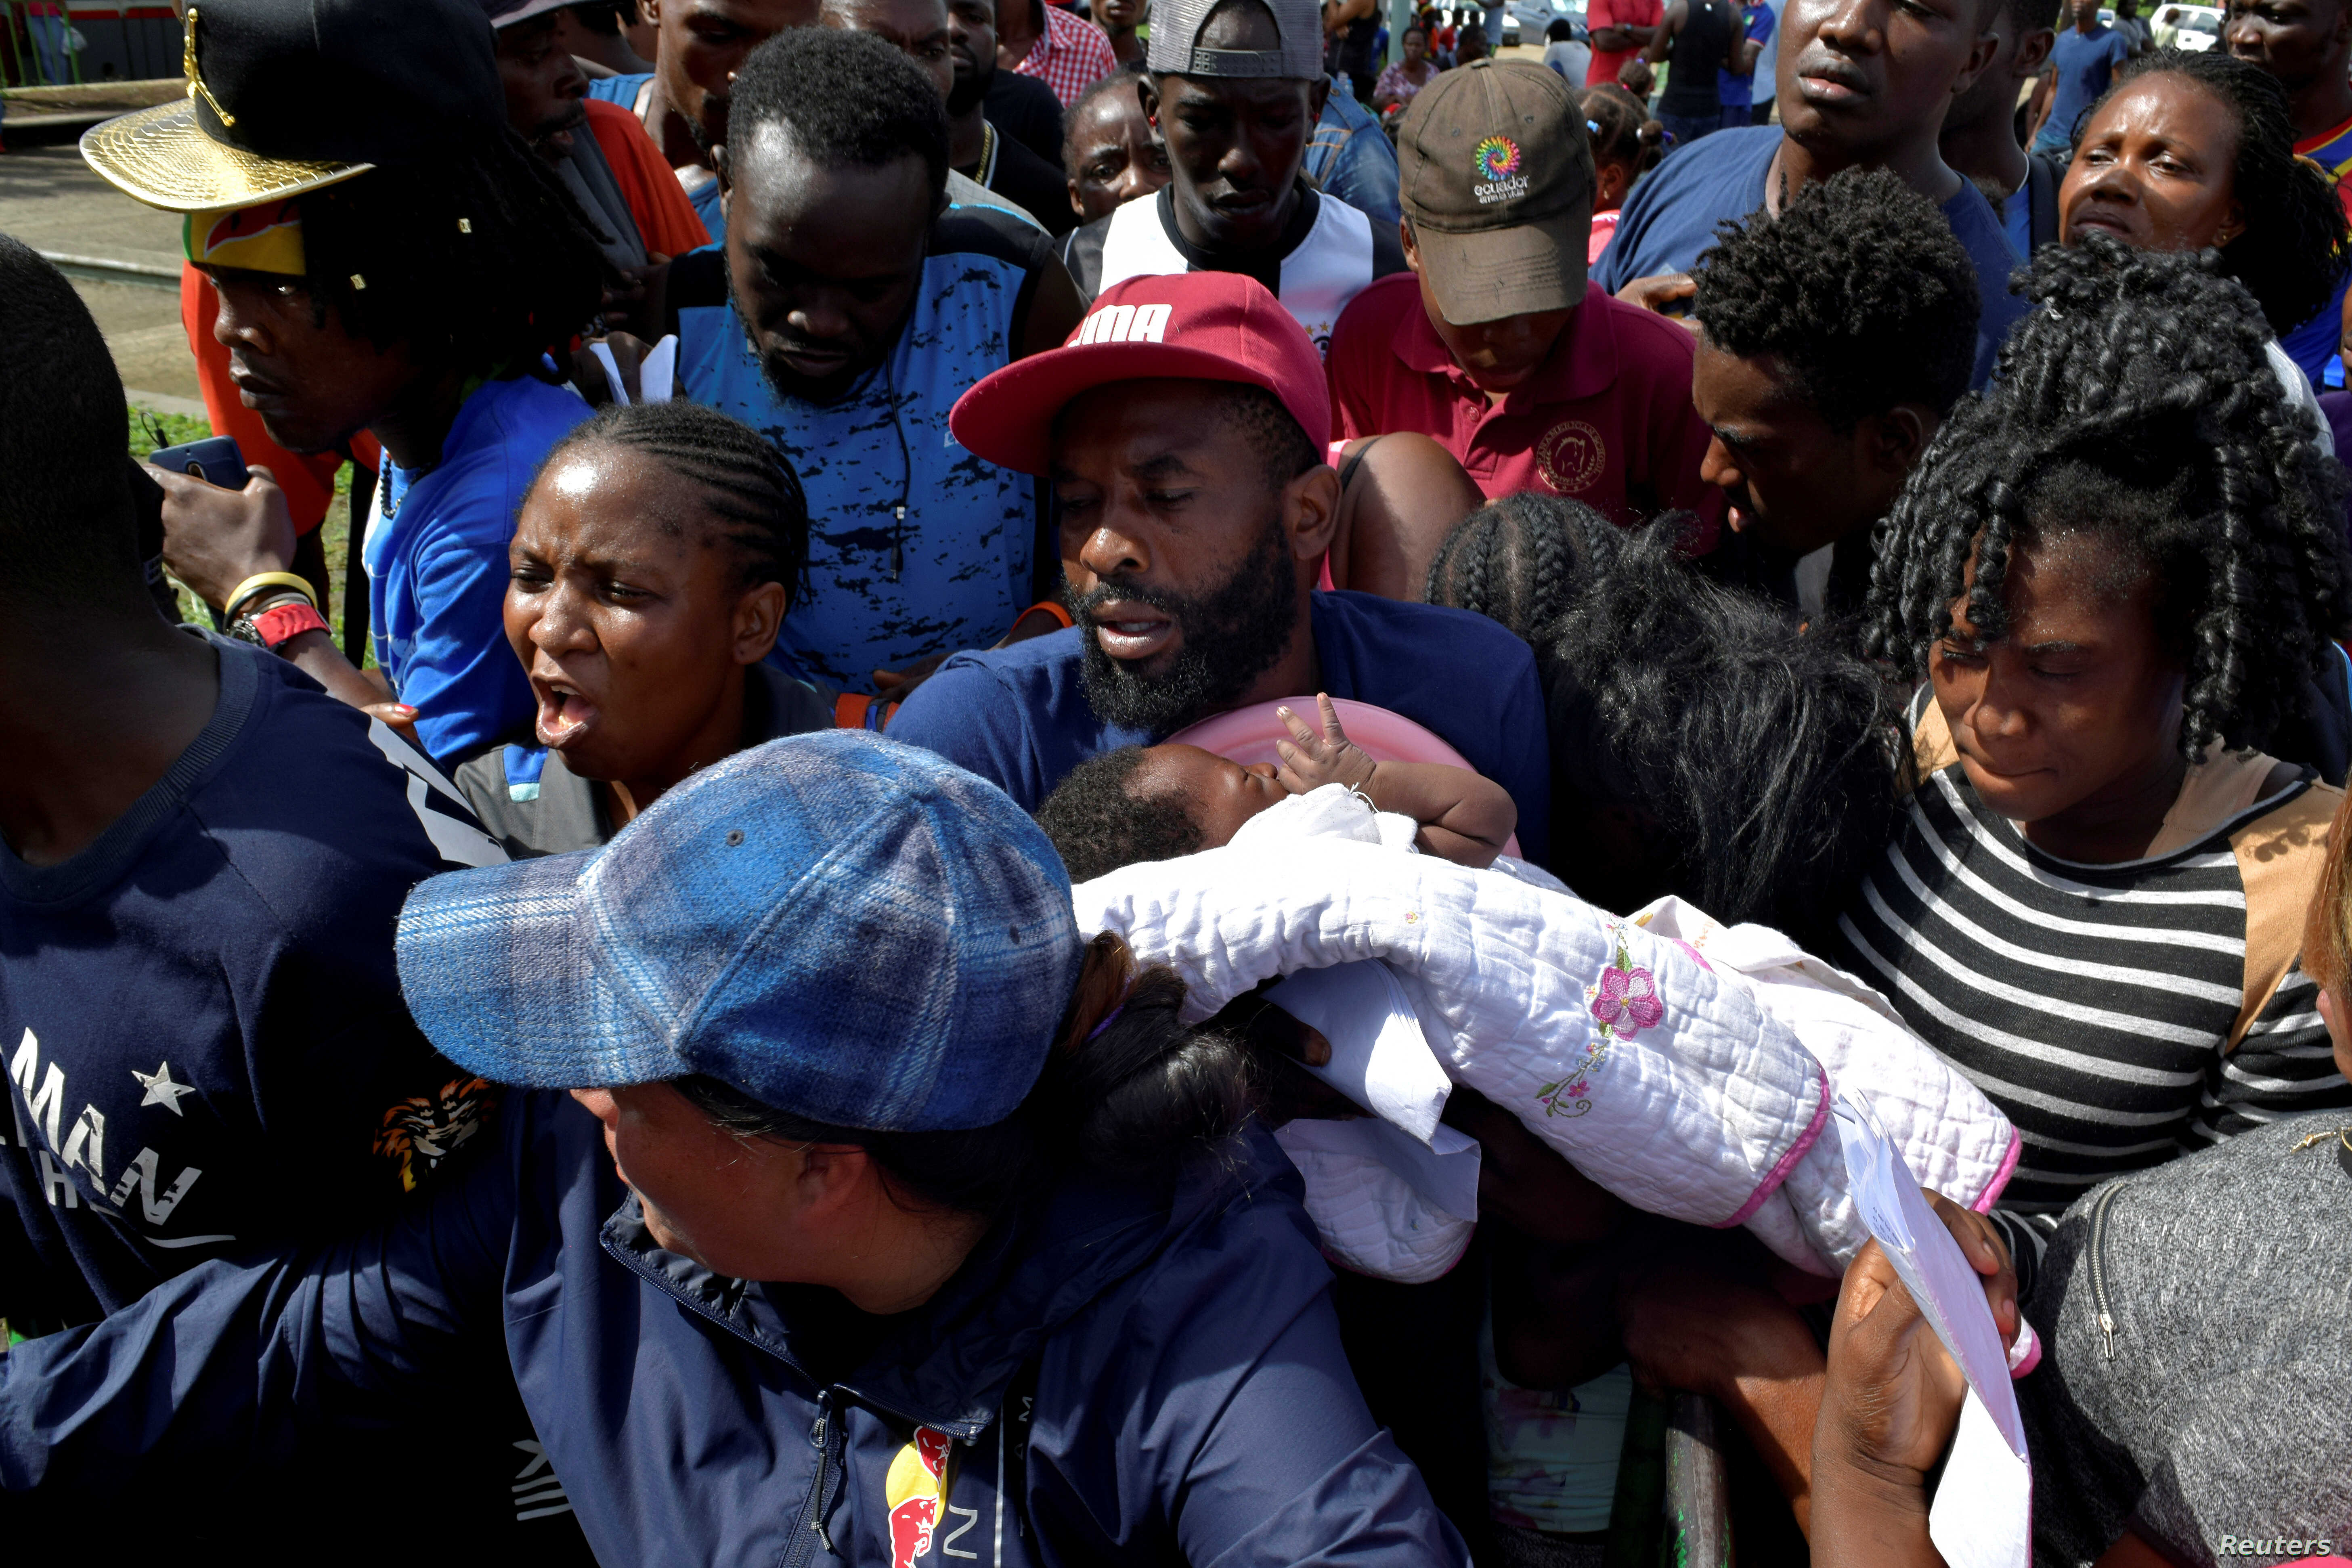 FILE PHOTO: A migrant from Cameroon holds his baby while trying to enter the Siglo XXI immigrant detention center to request humanitarian visas, issued by the Mexican government, to cross the country towards the U.S., in Tapachula, Mexico, July 5, 2019